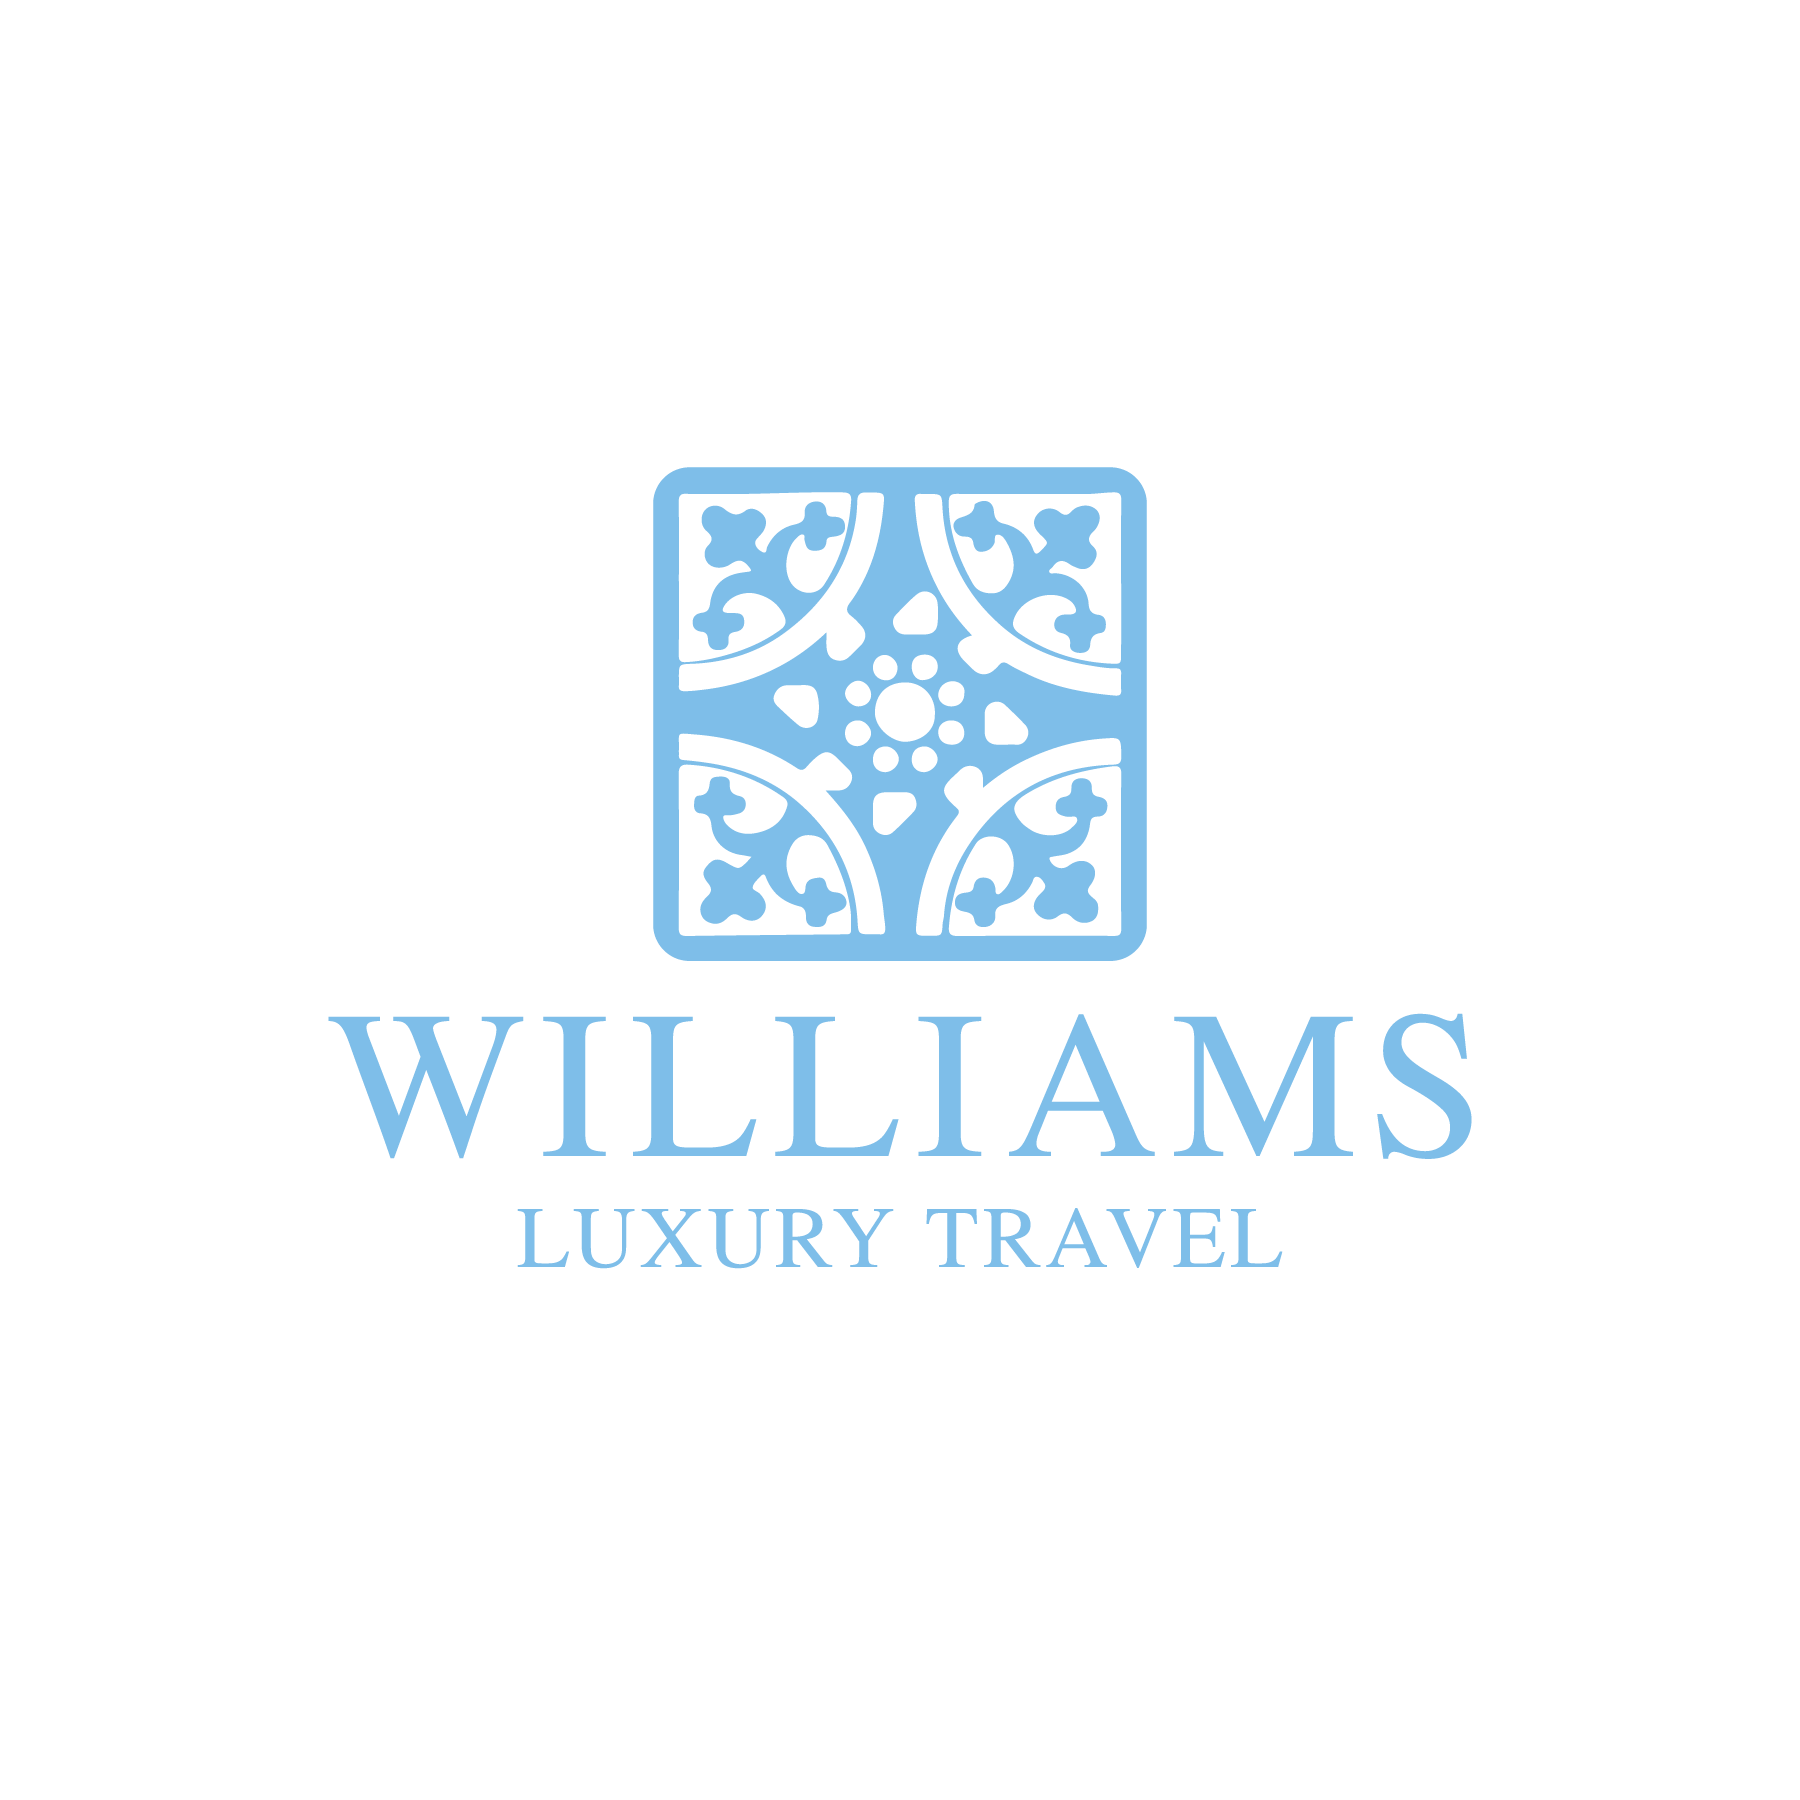 Williams Luxury Travel